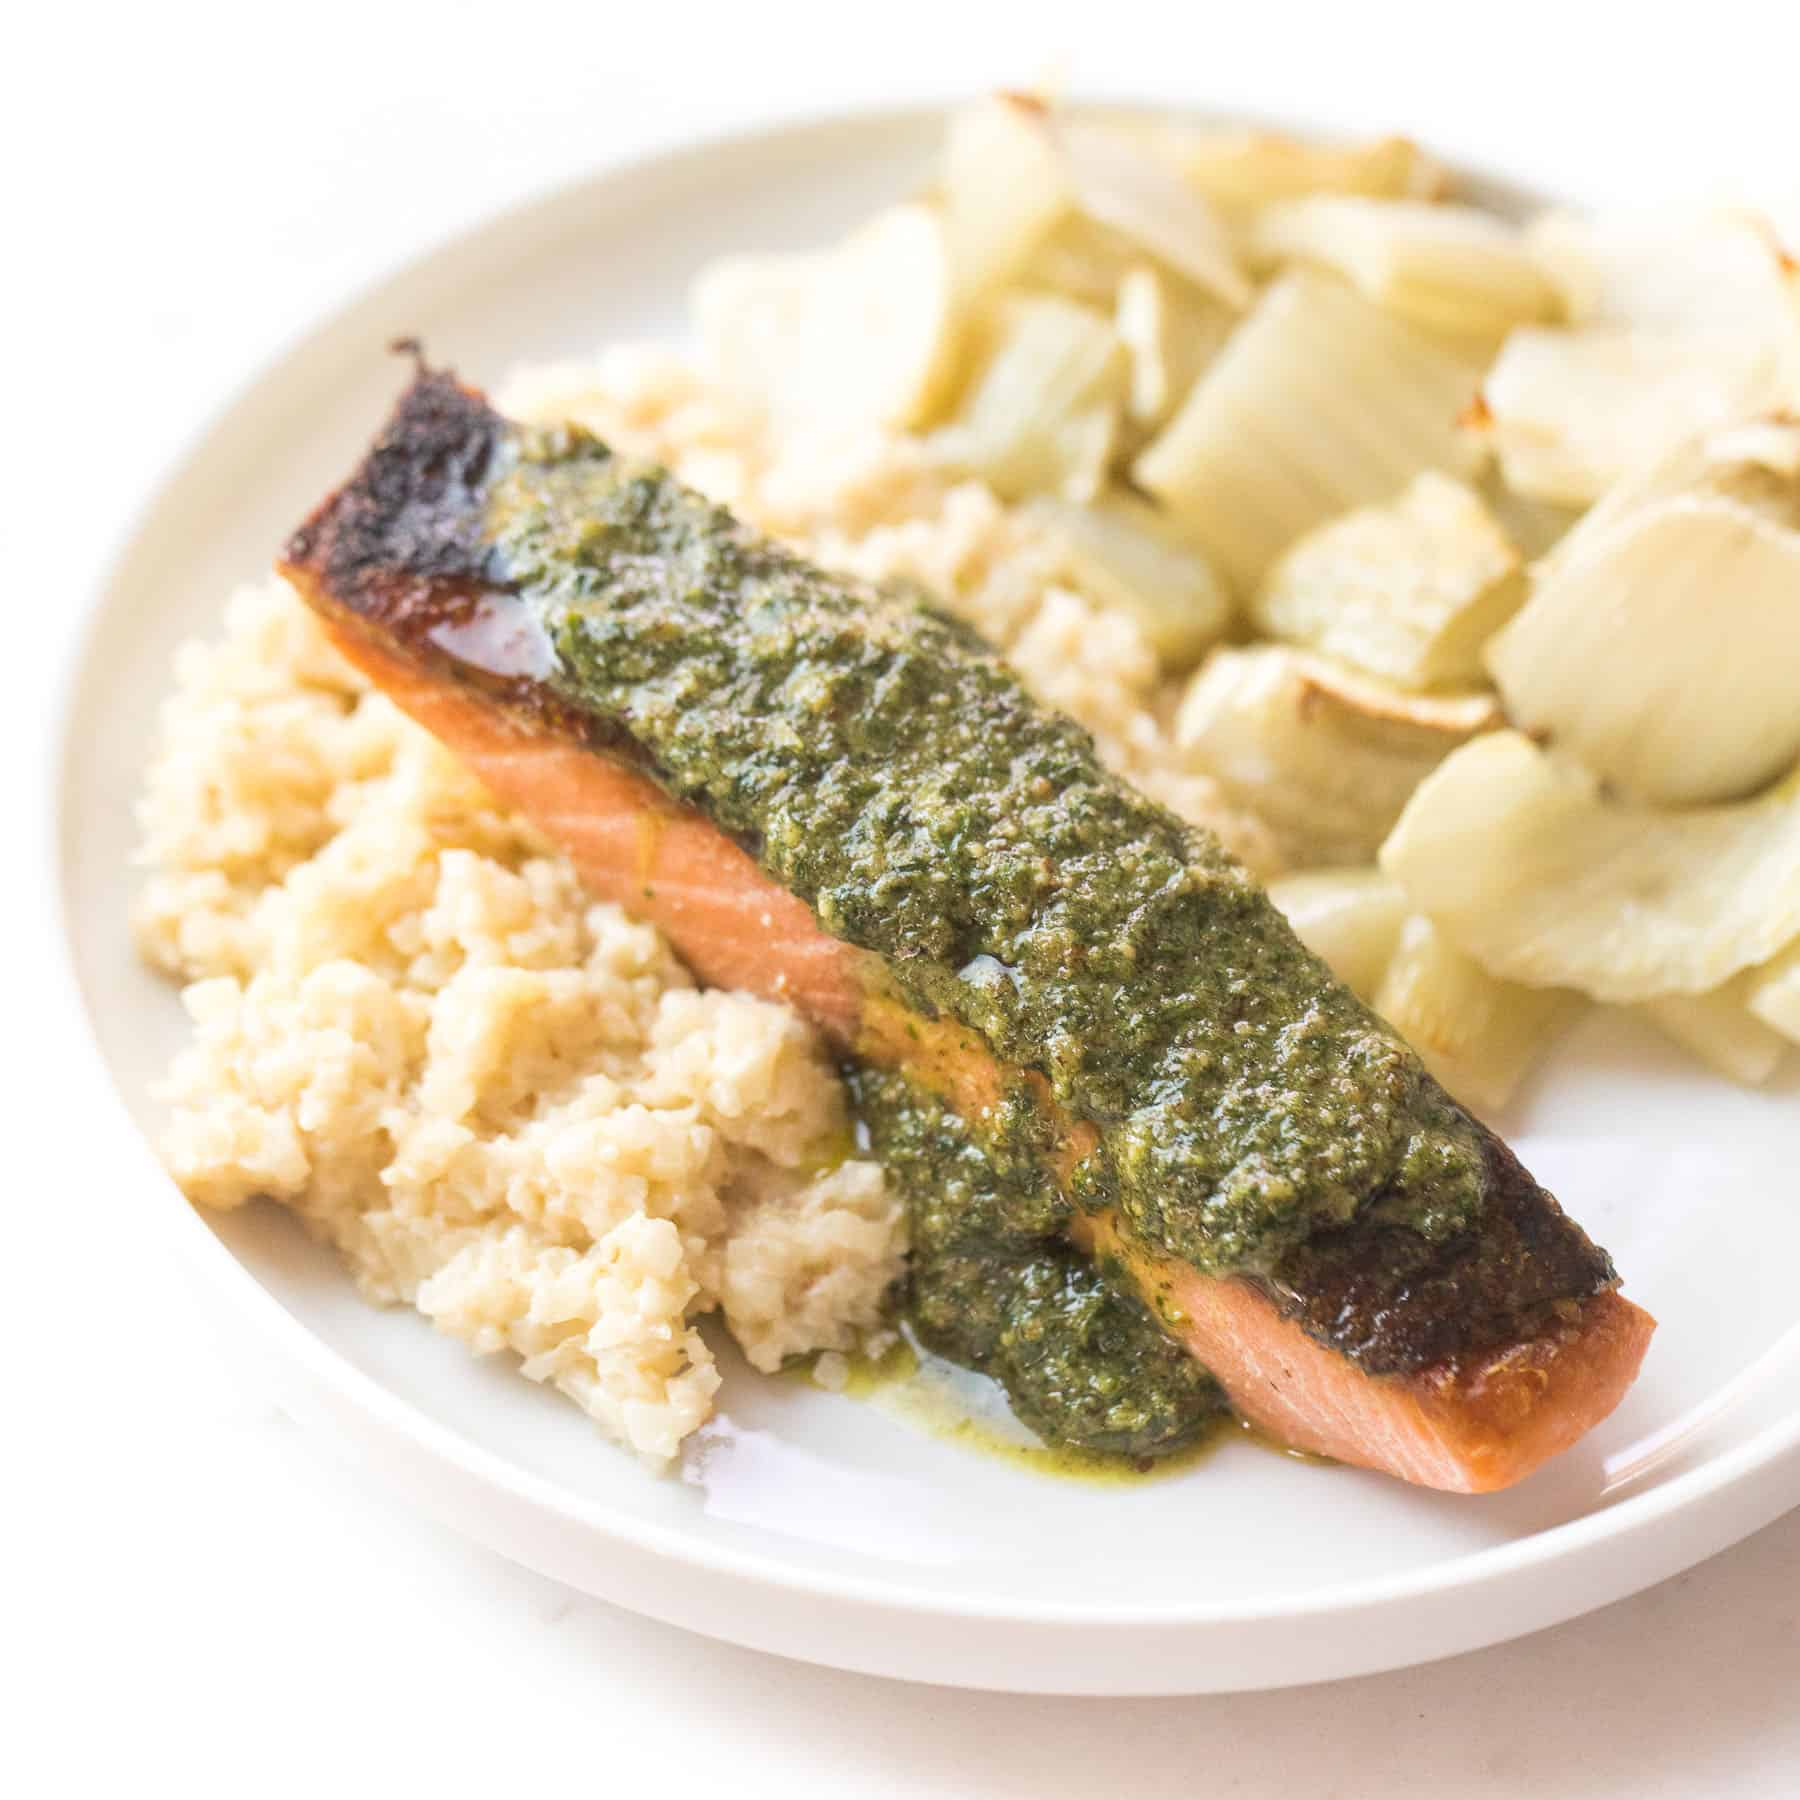 salmon with orange parsley sauce on a white plate with cauliflower rice